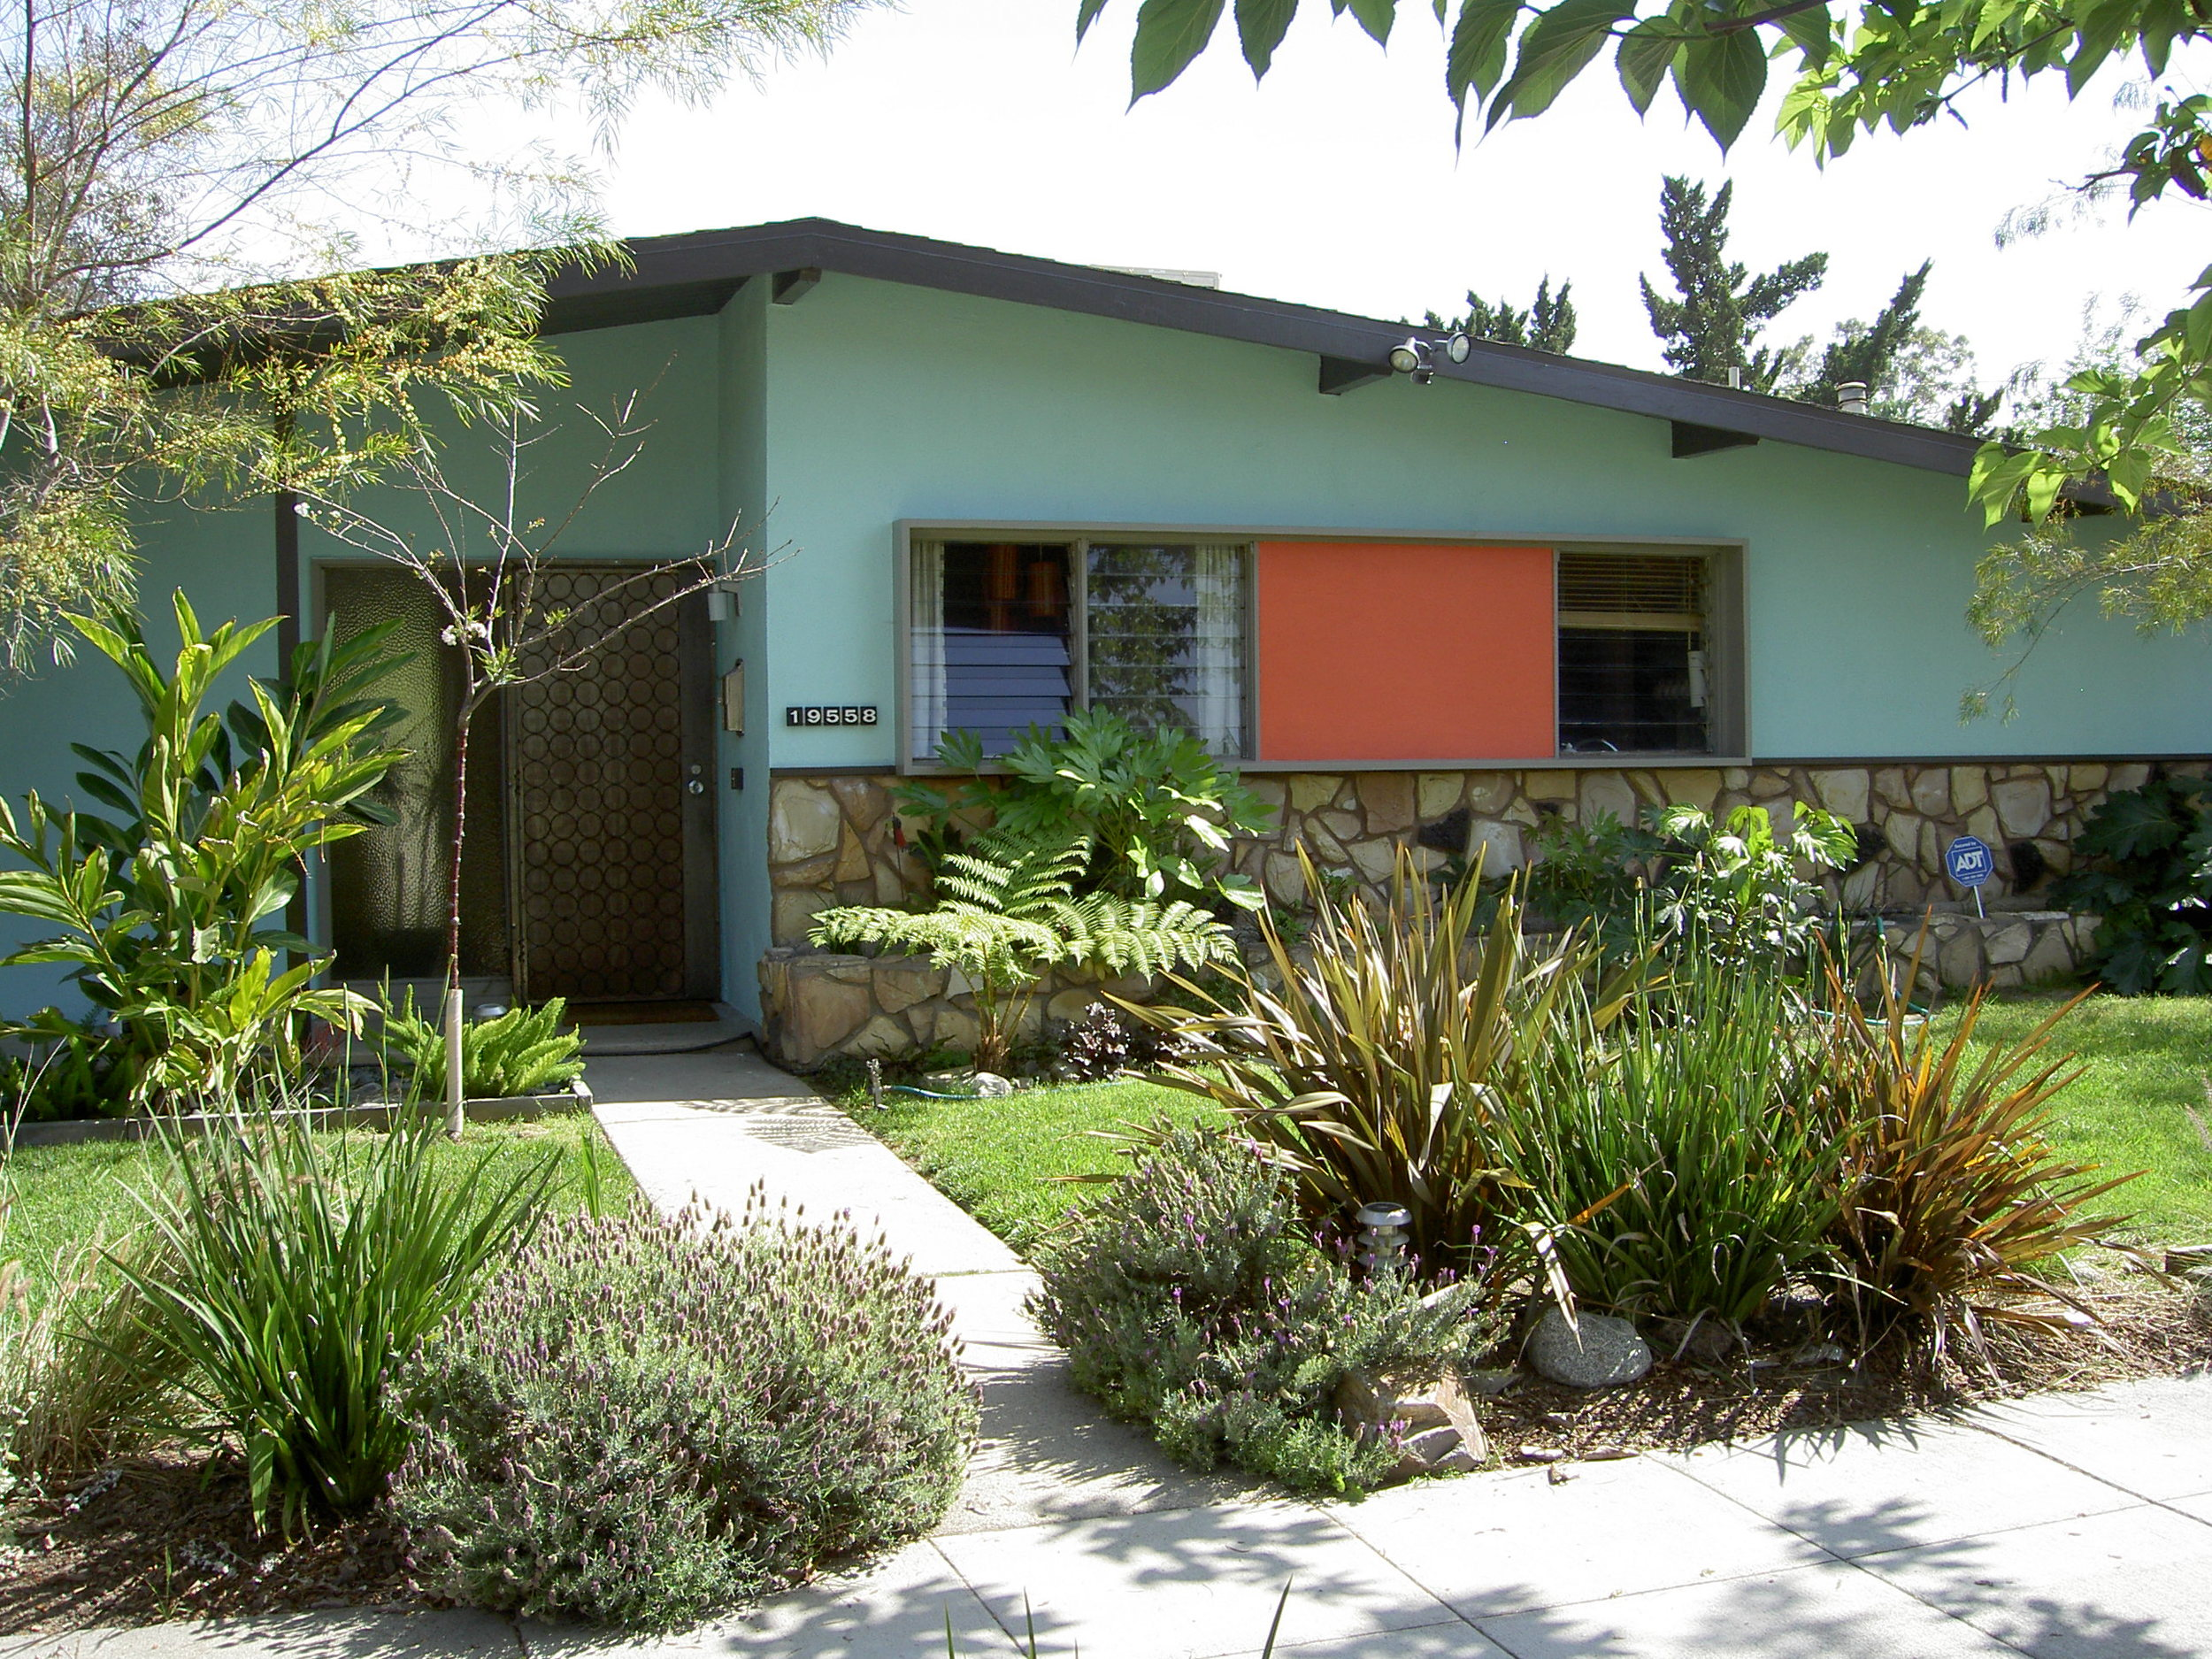 This is my modest little 1952 MCM house, designed by architect Ed Fickett.